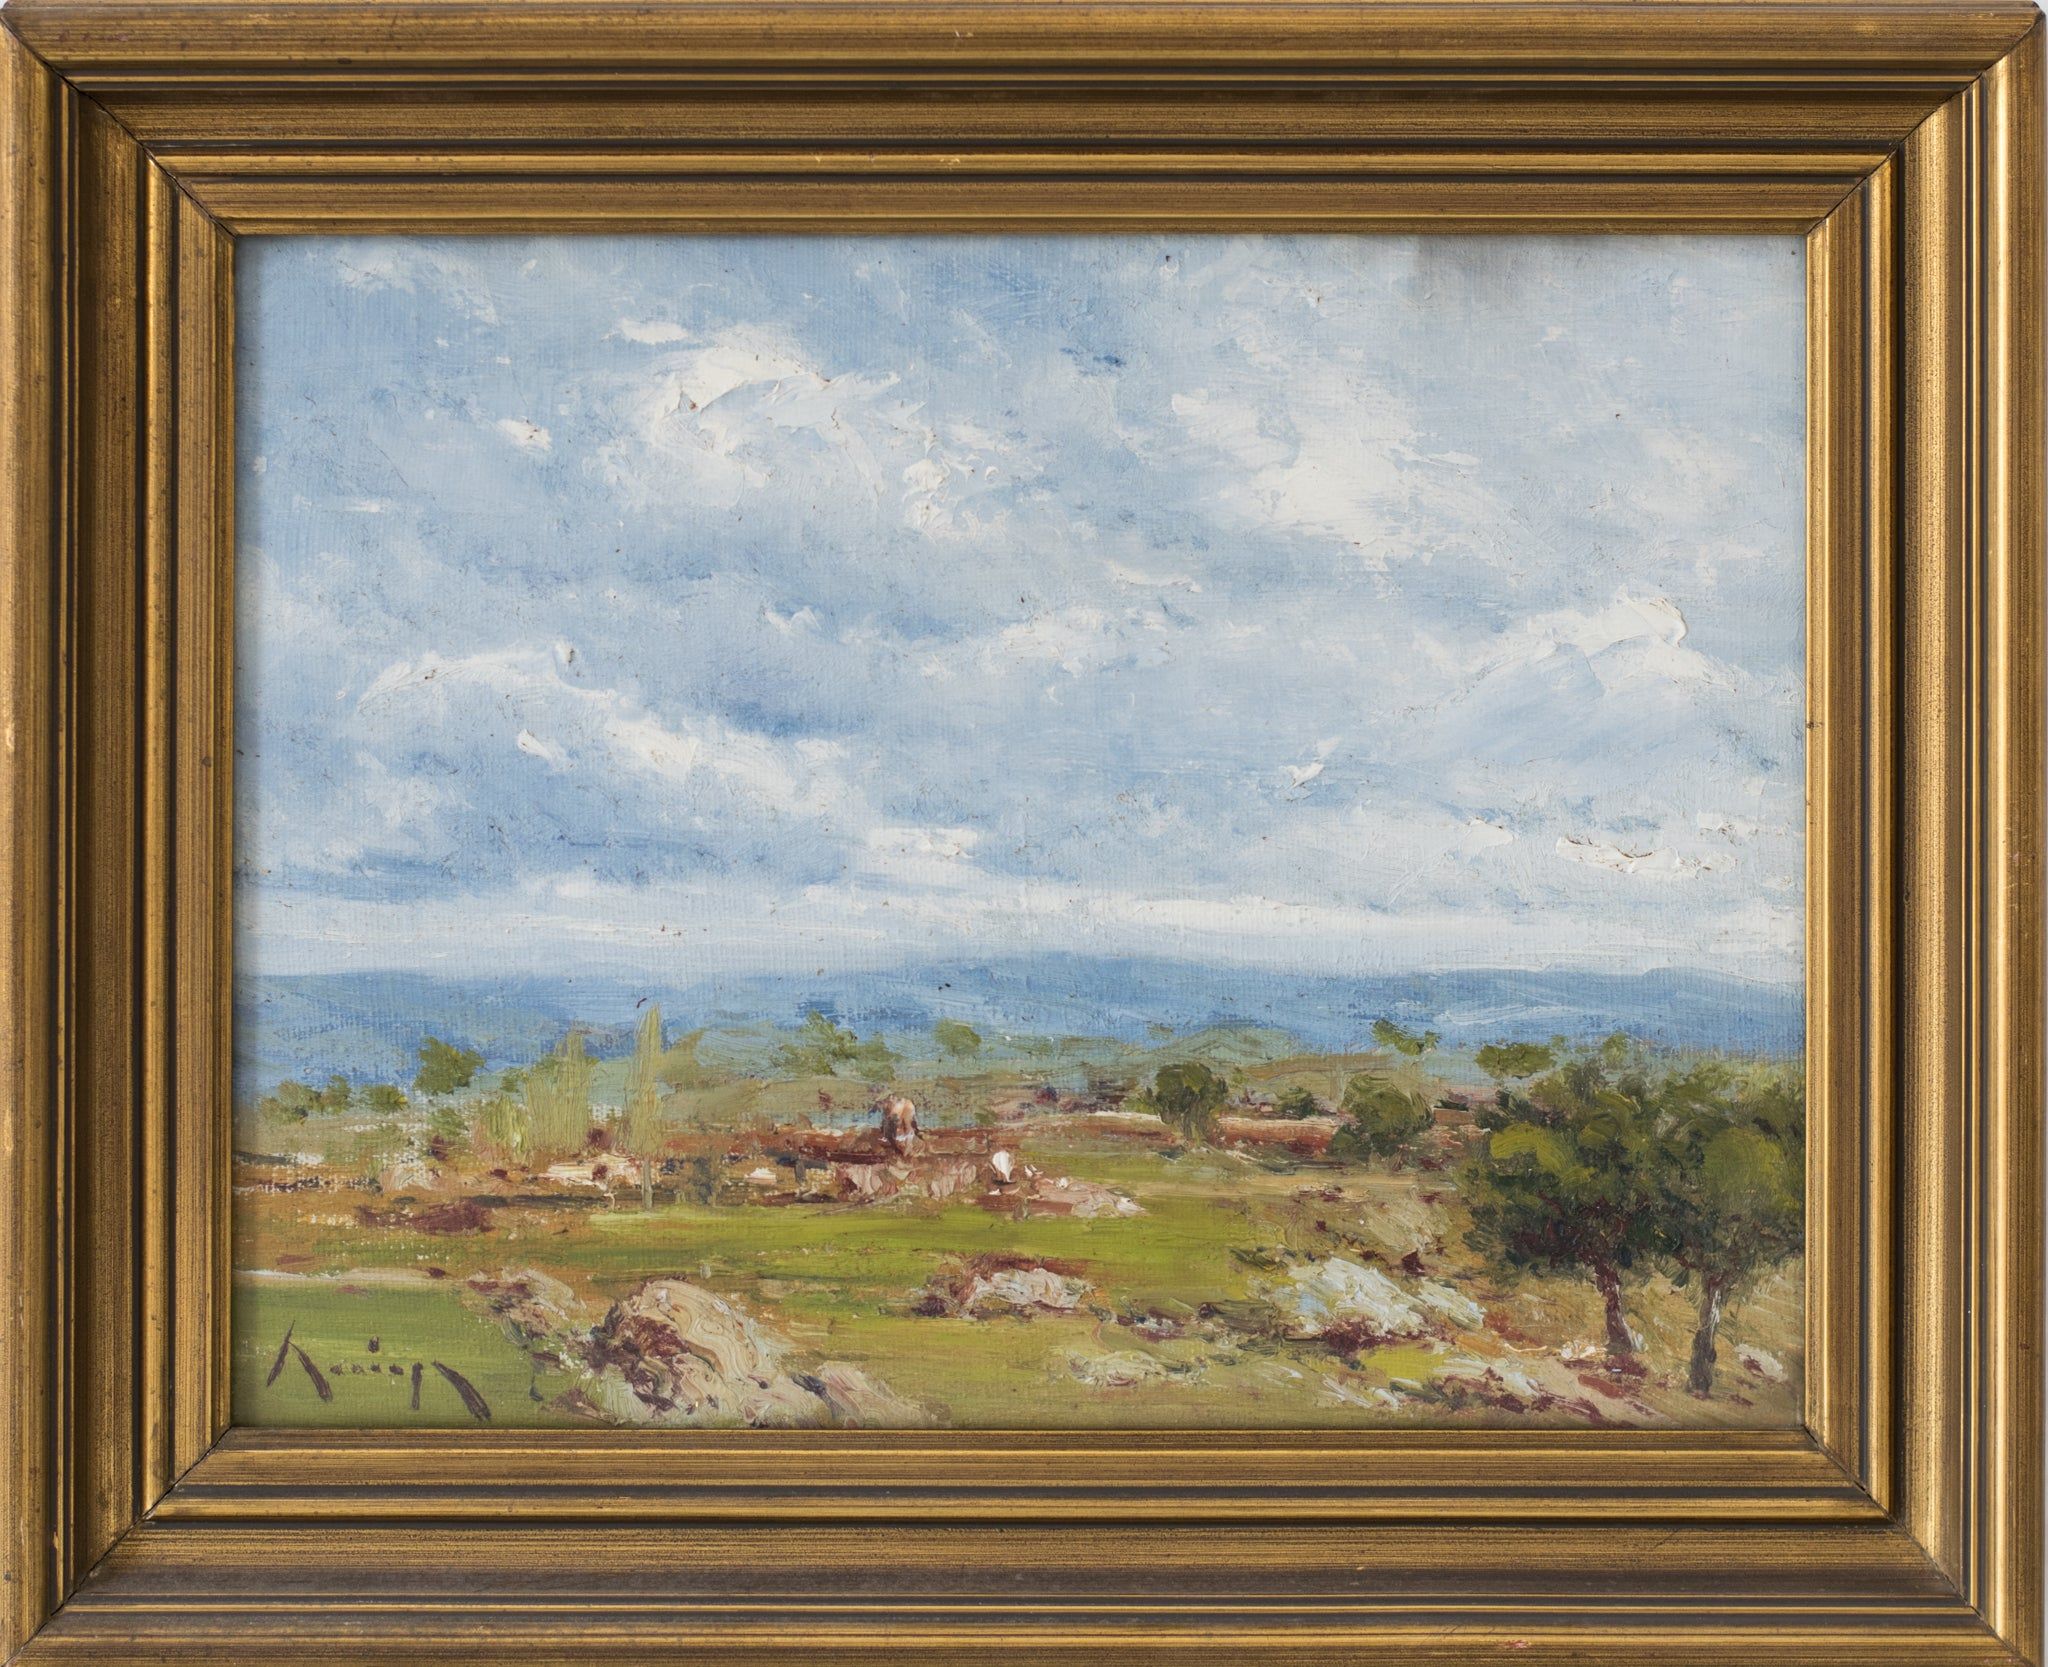 Landscape with a View of Mountains_Framed